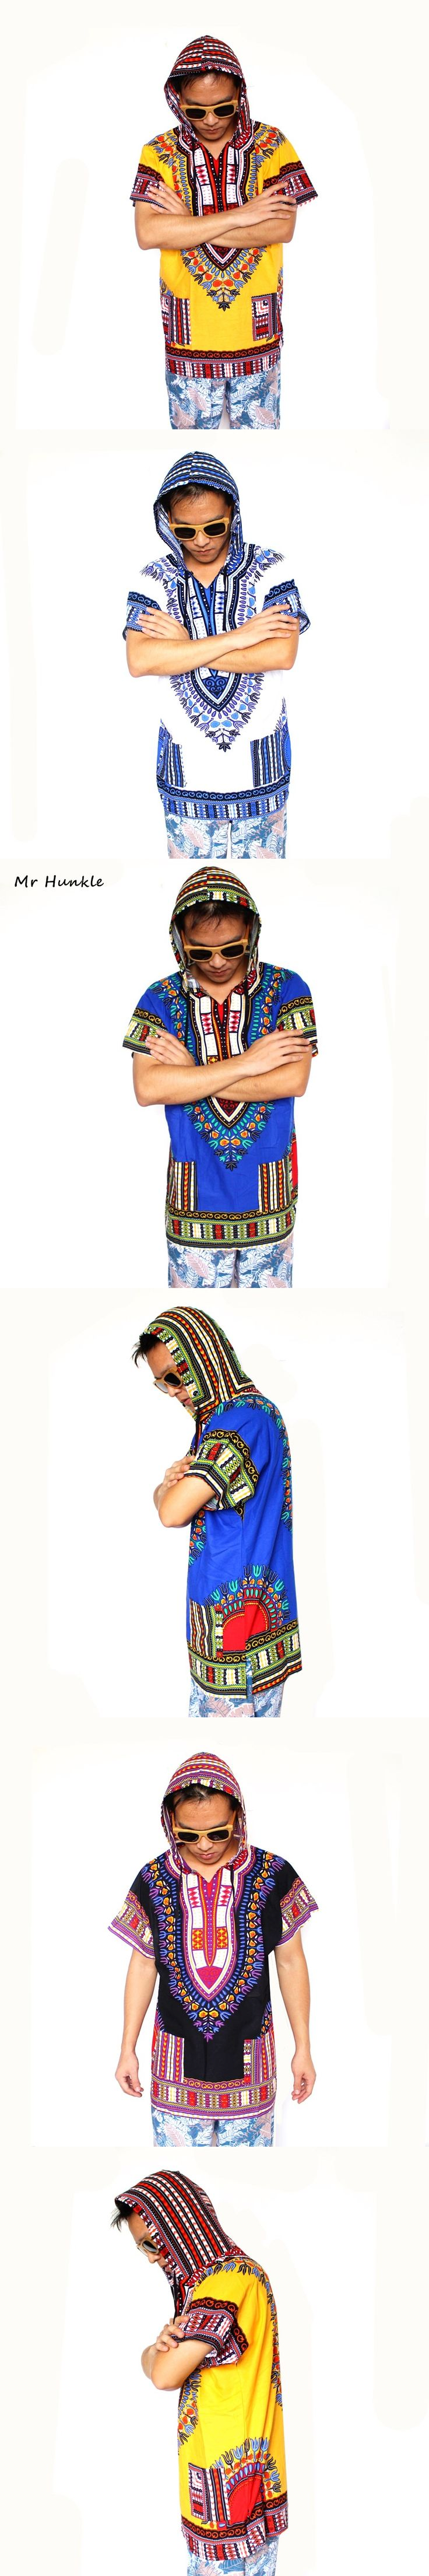 Mr Hunkle 2017 New Fashion Design Traditional African Clothing Print 100% Cotton Dashiki Hoodies women men Dashiki Hoodies